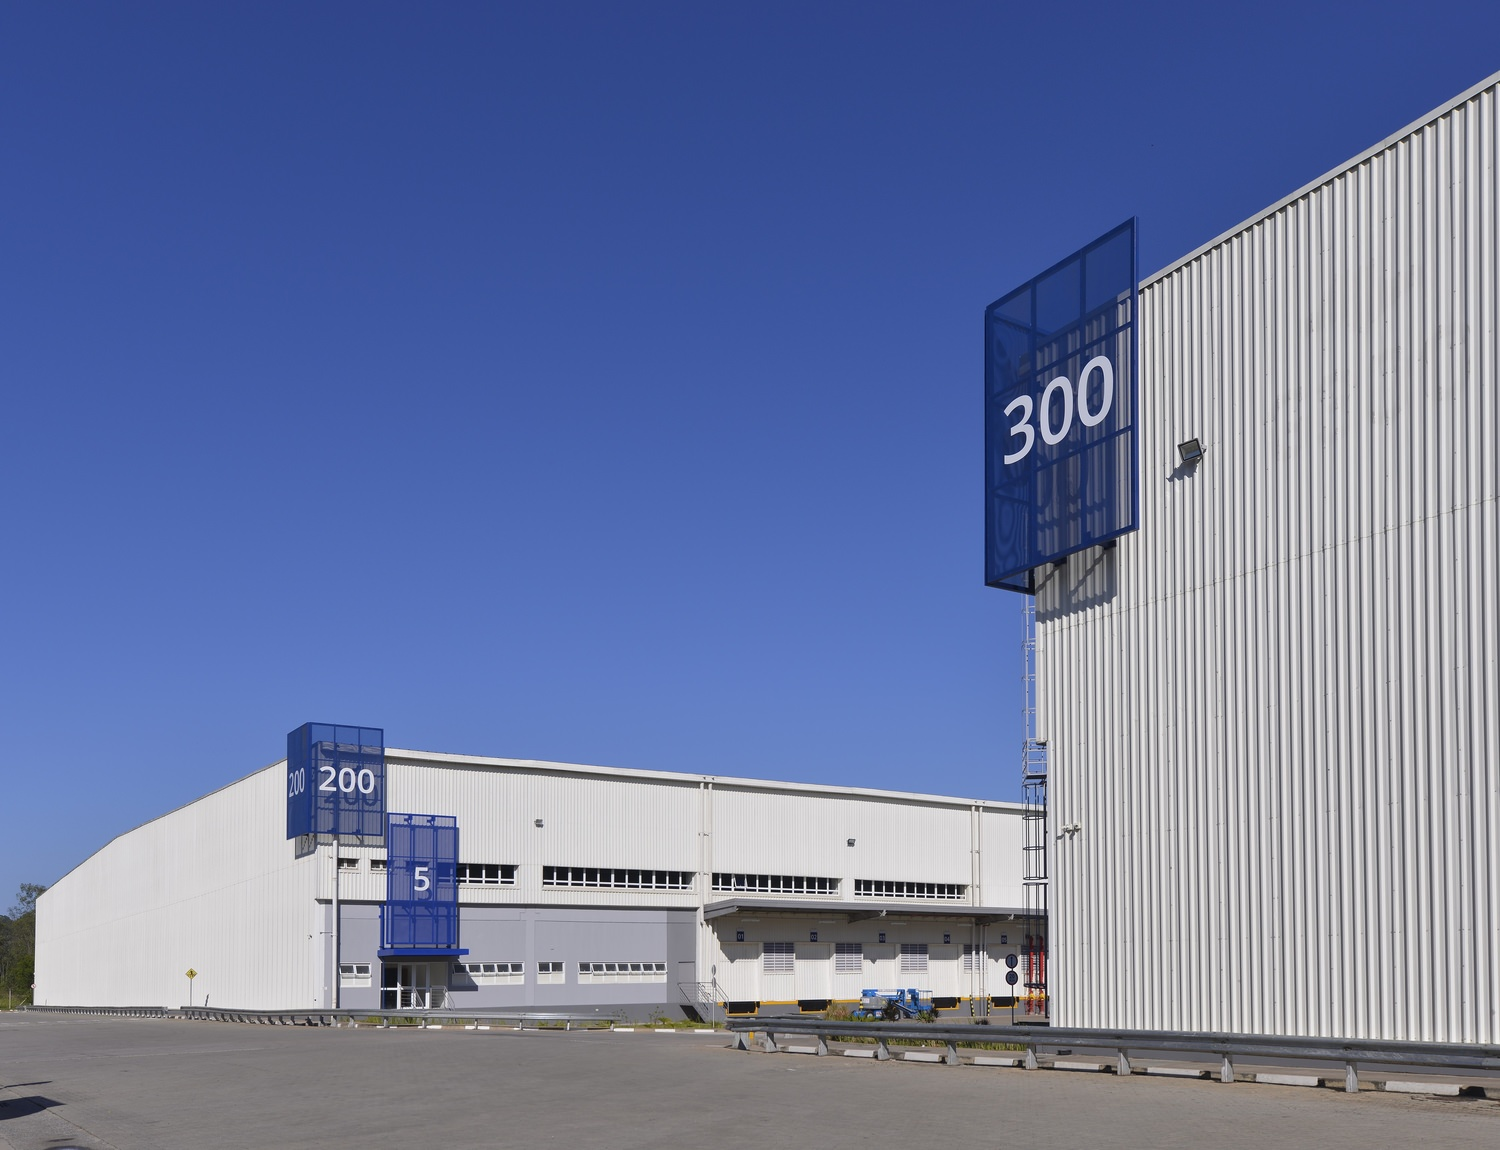 """Two large warehouses, one labeled """"300"""" and the other labeled """"200"""" with a 5 above a doorway."""